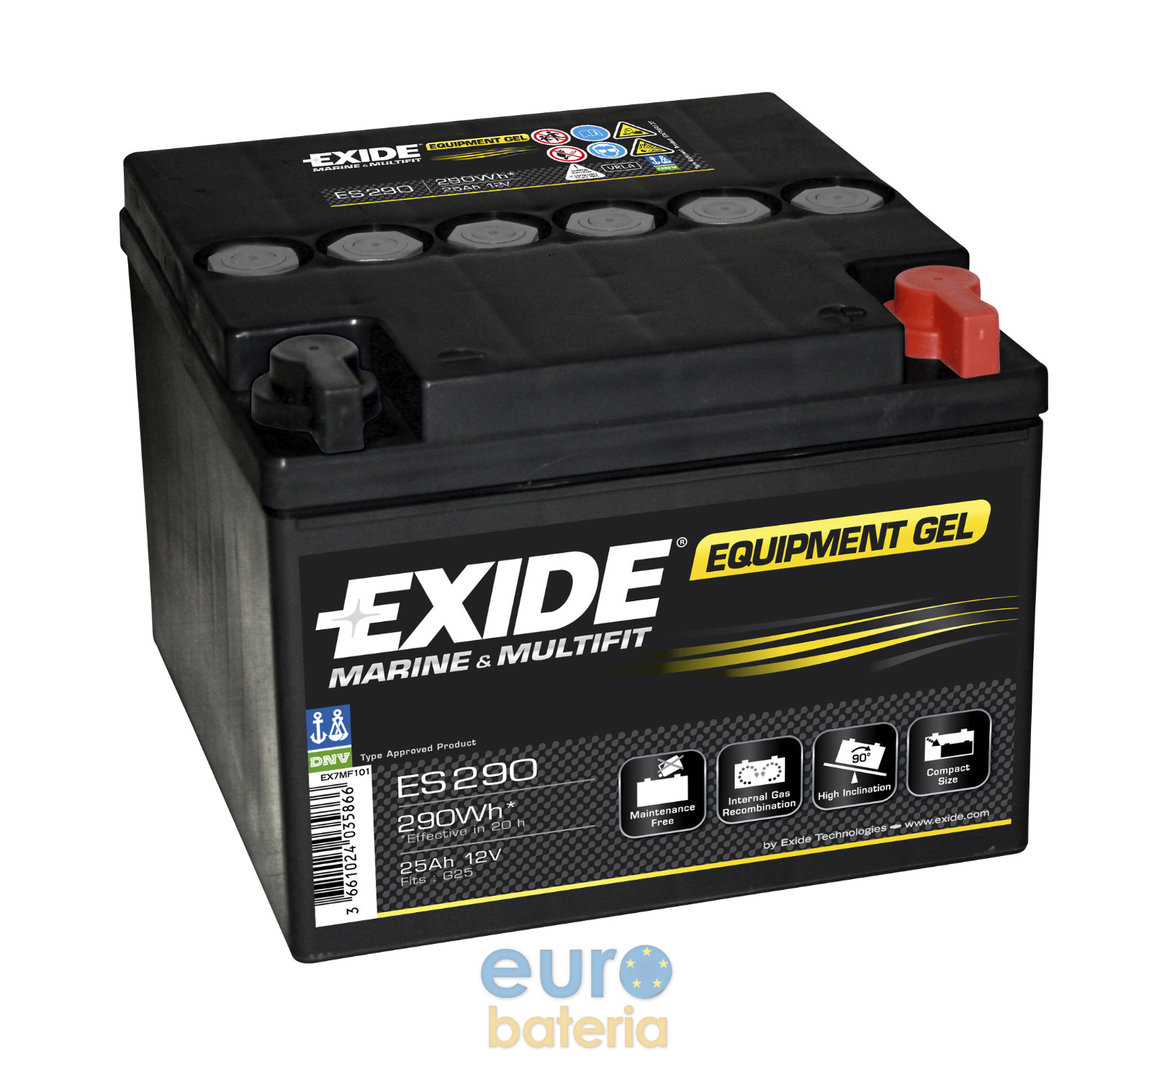 battery 12v 25ah exide gel es290 for golf cars. Black Bedroom Furniture Sets. Home Design Ideas